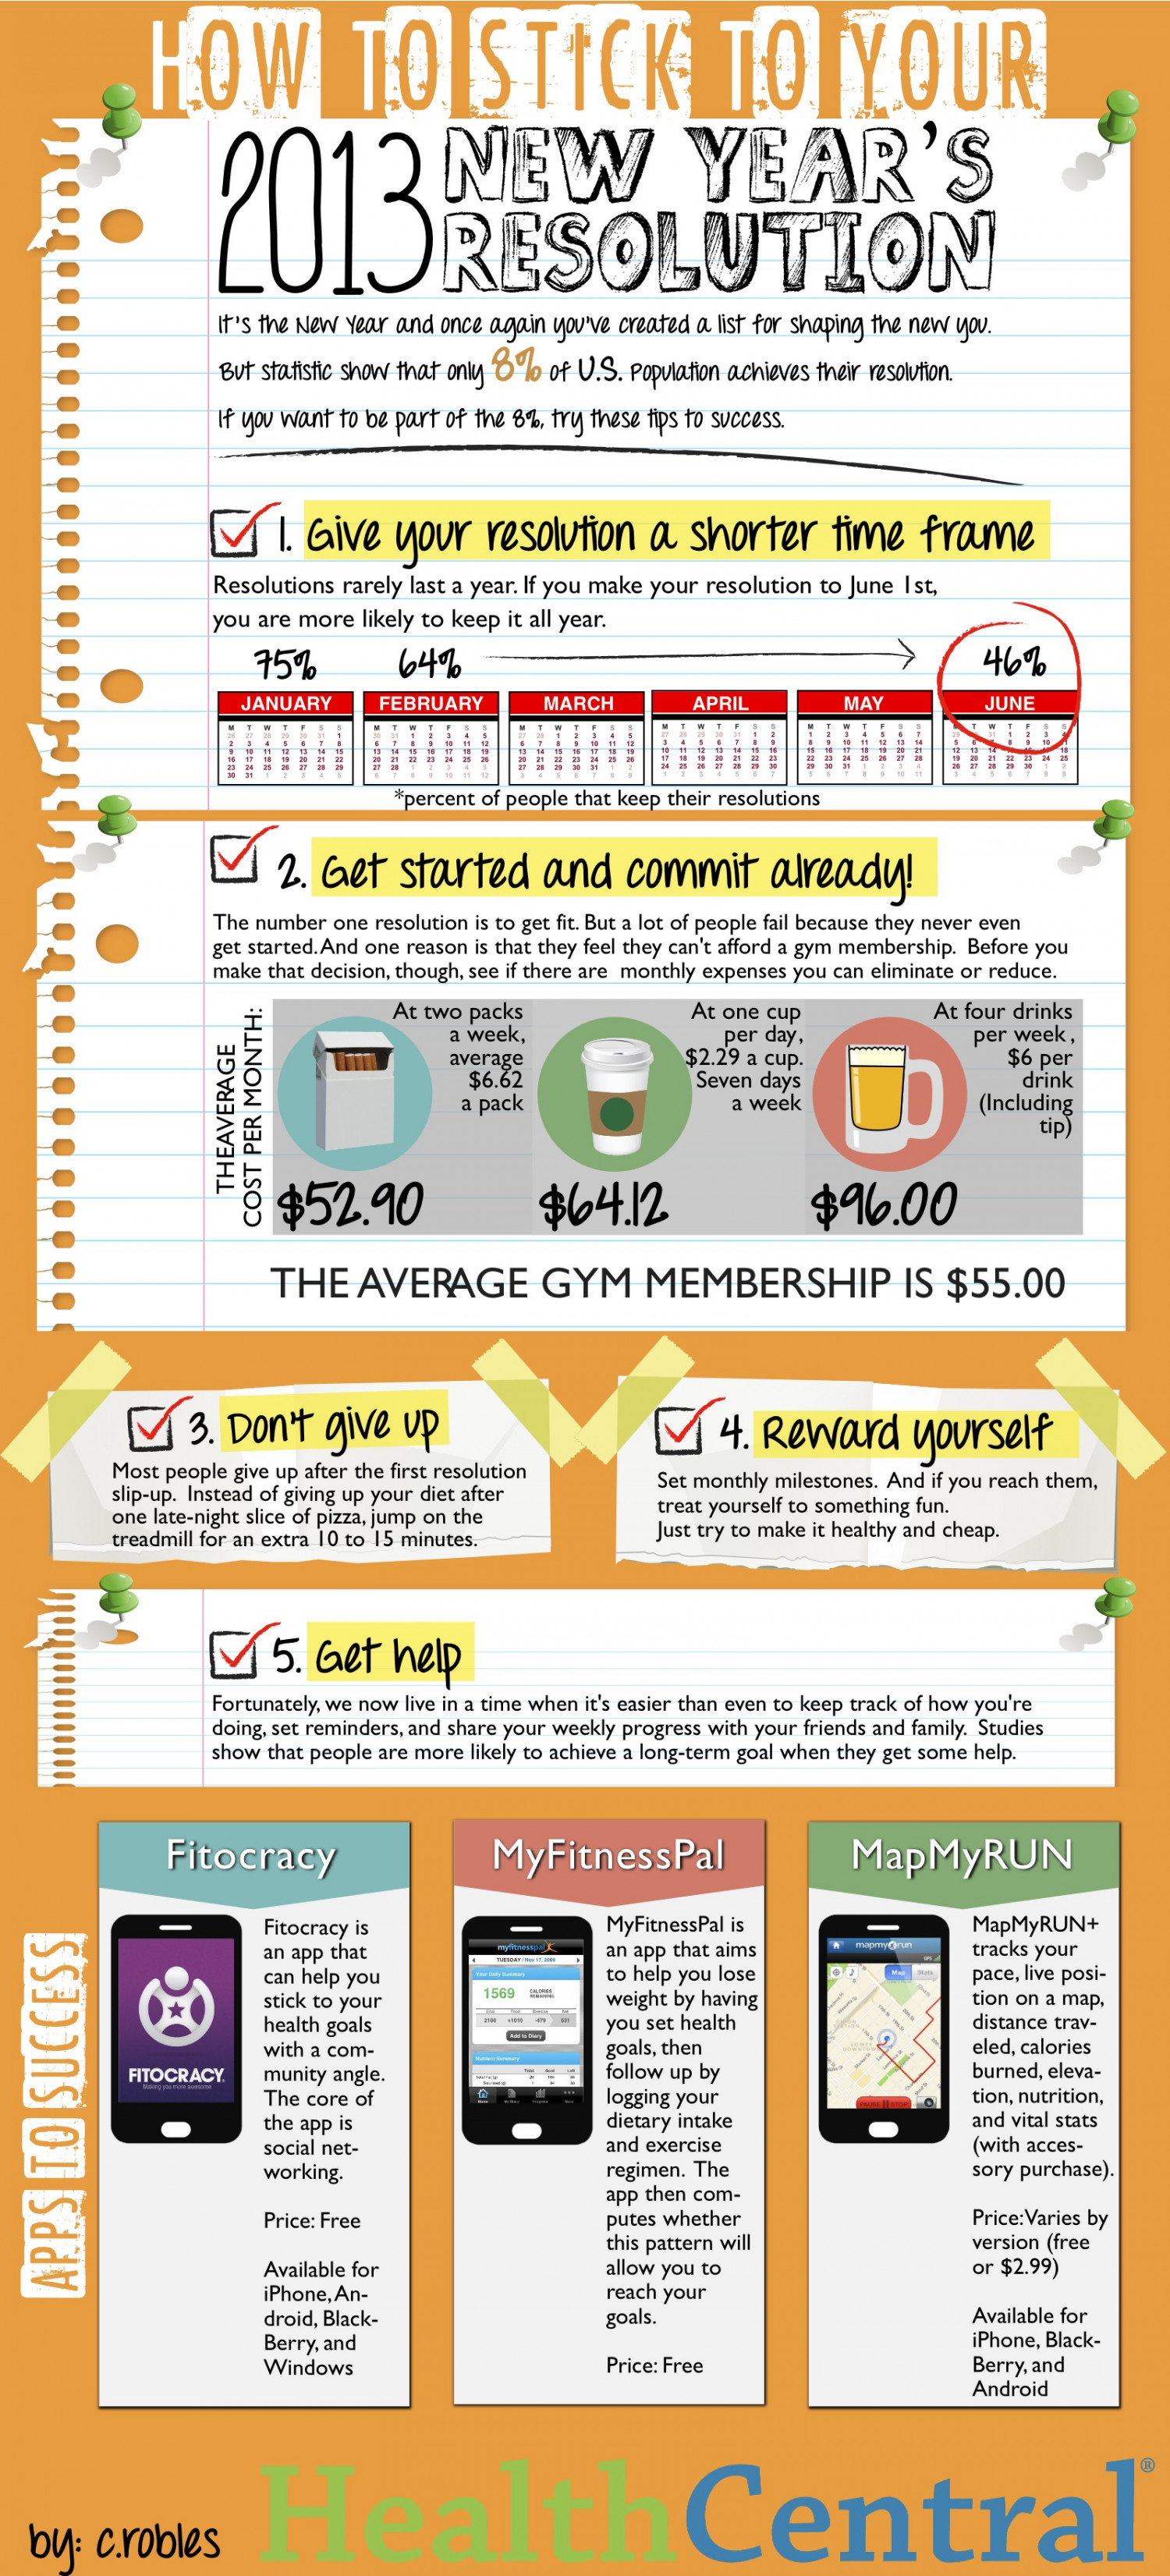 How to stick to your New Year's resolution Infographic